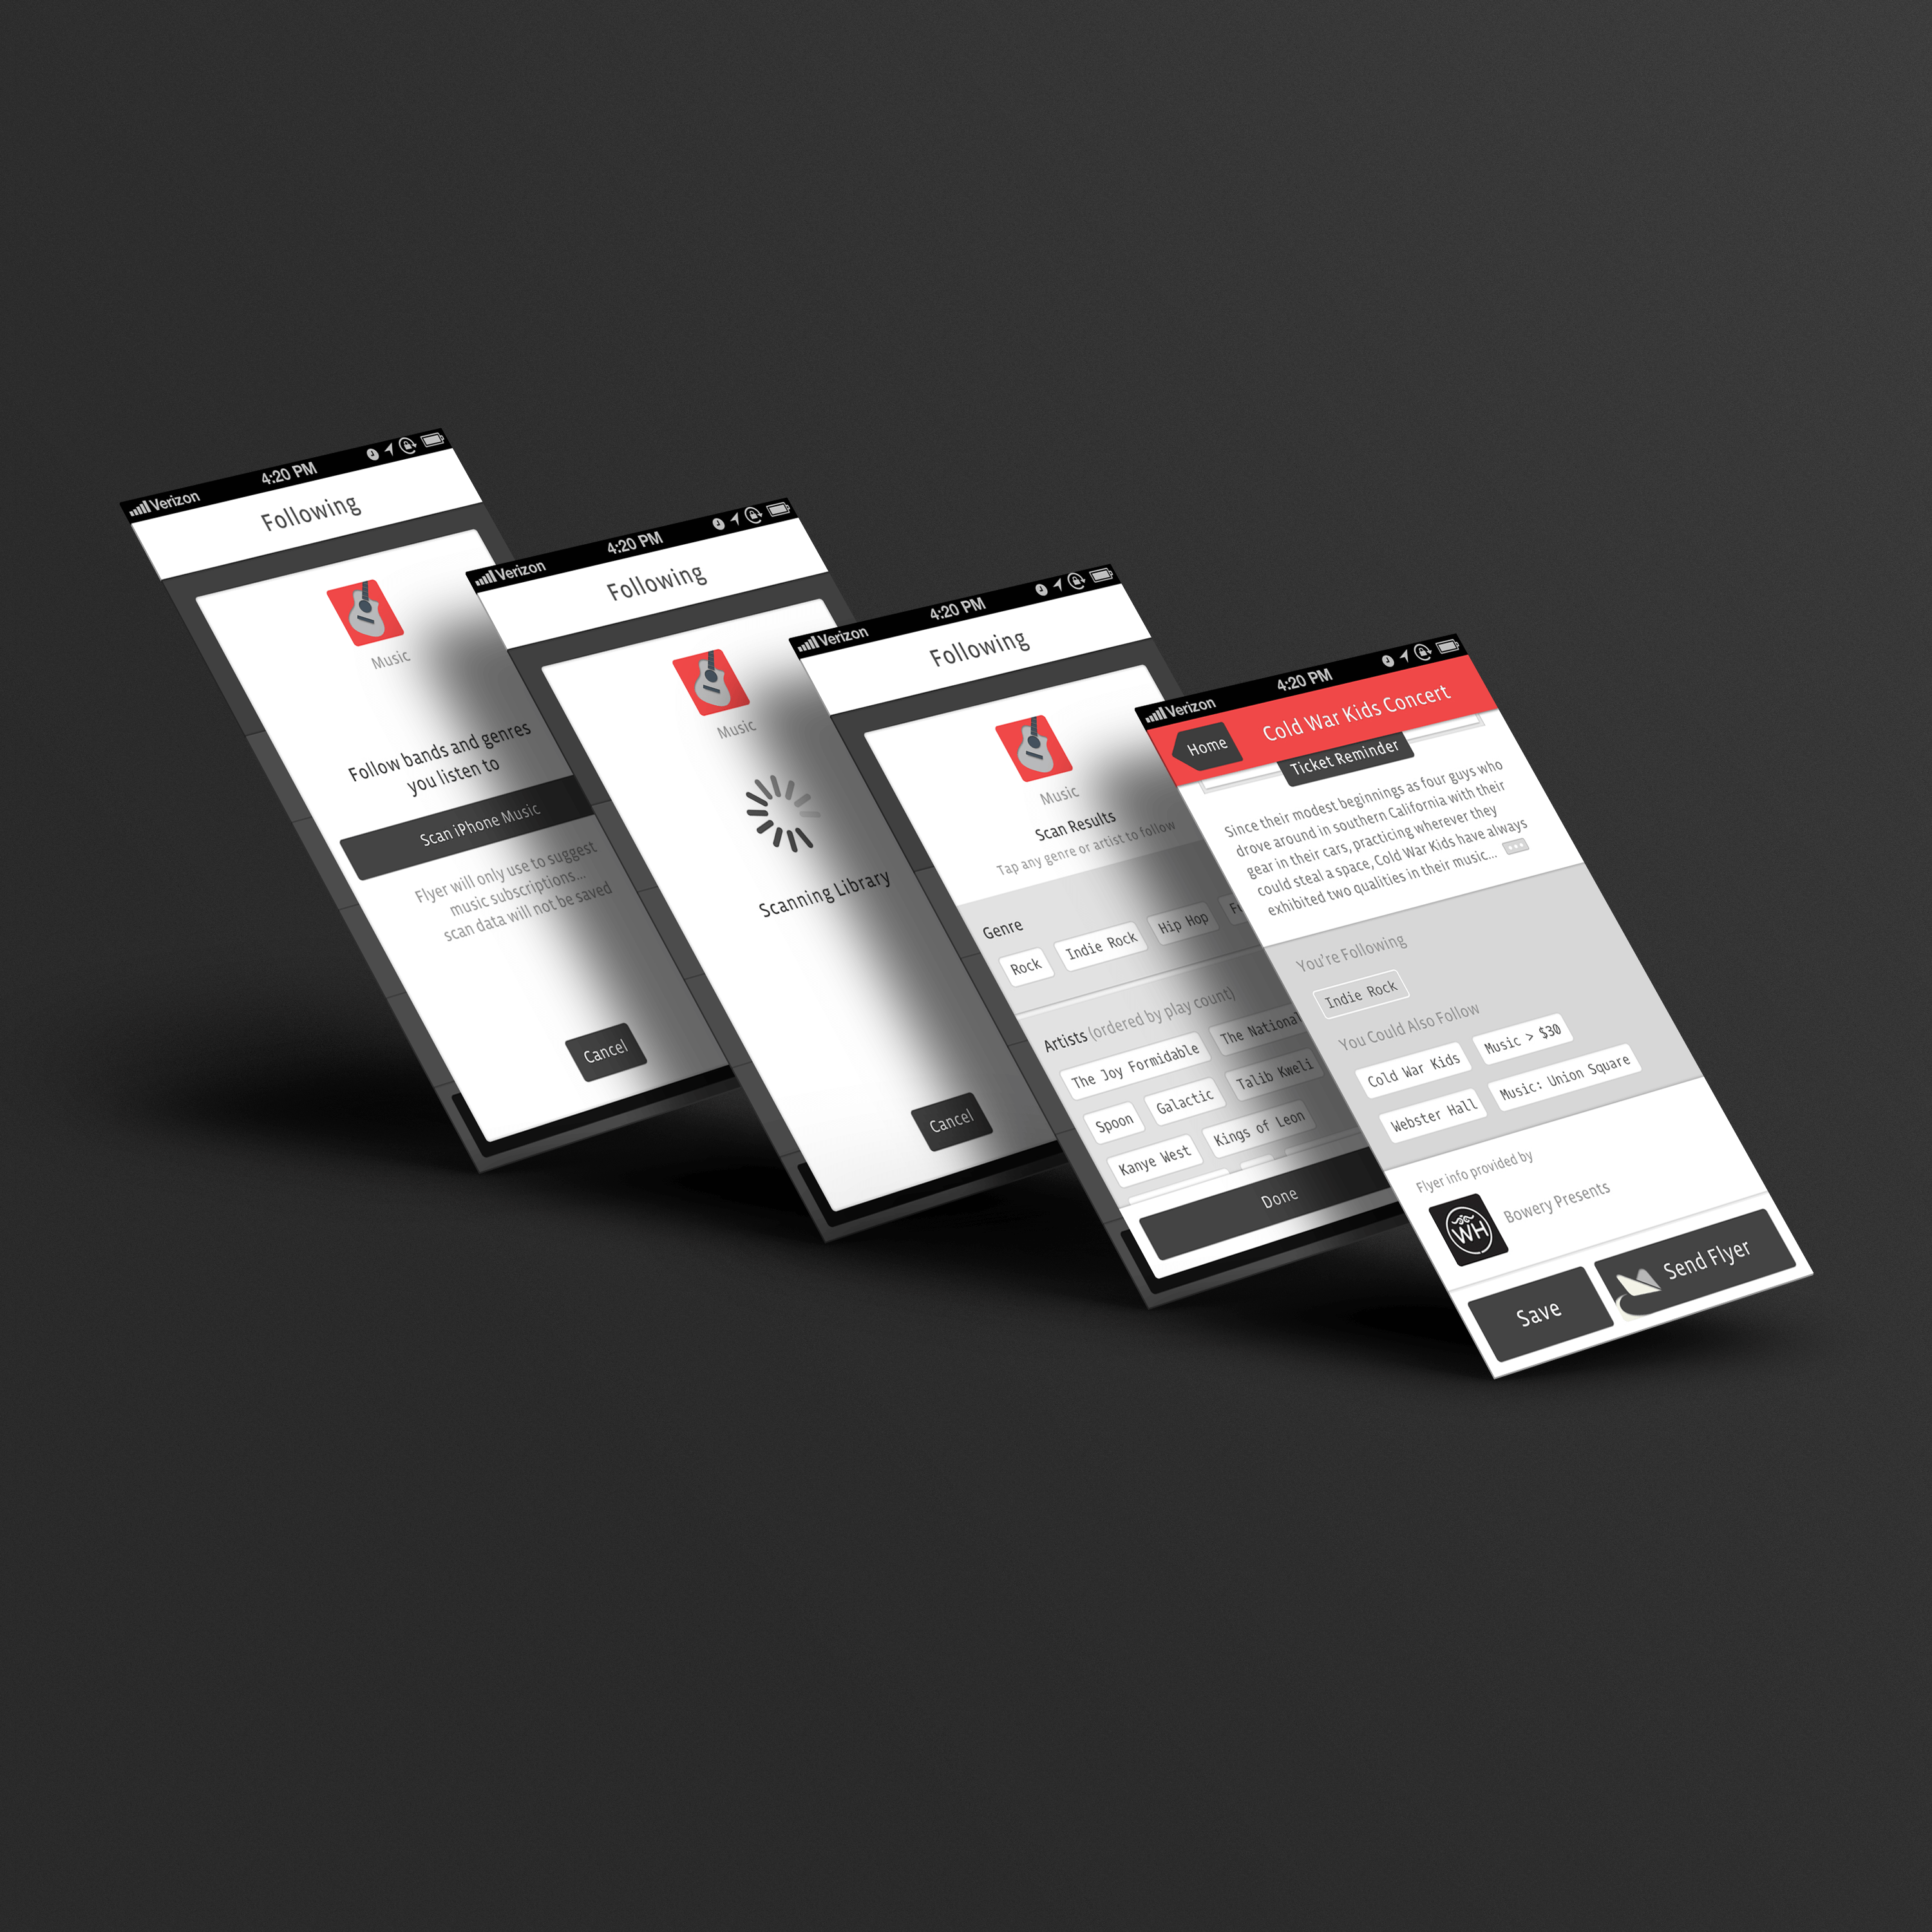 Flyer-App-Screens-Mock-up